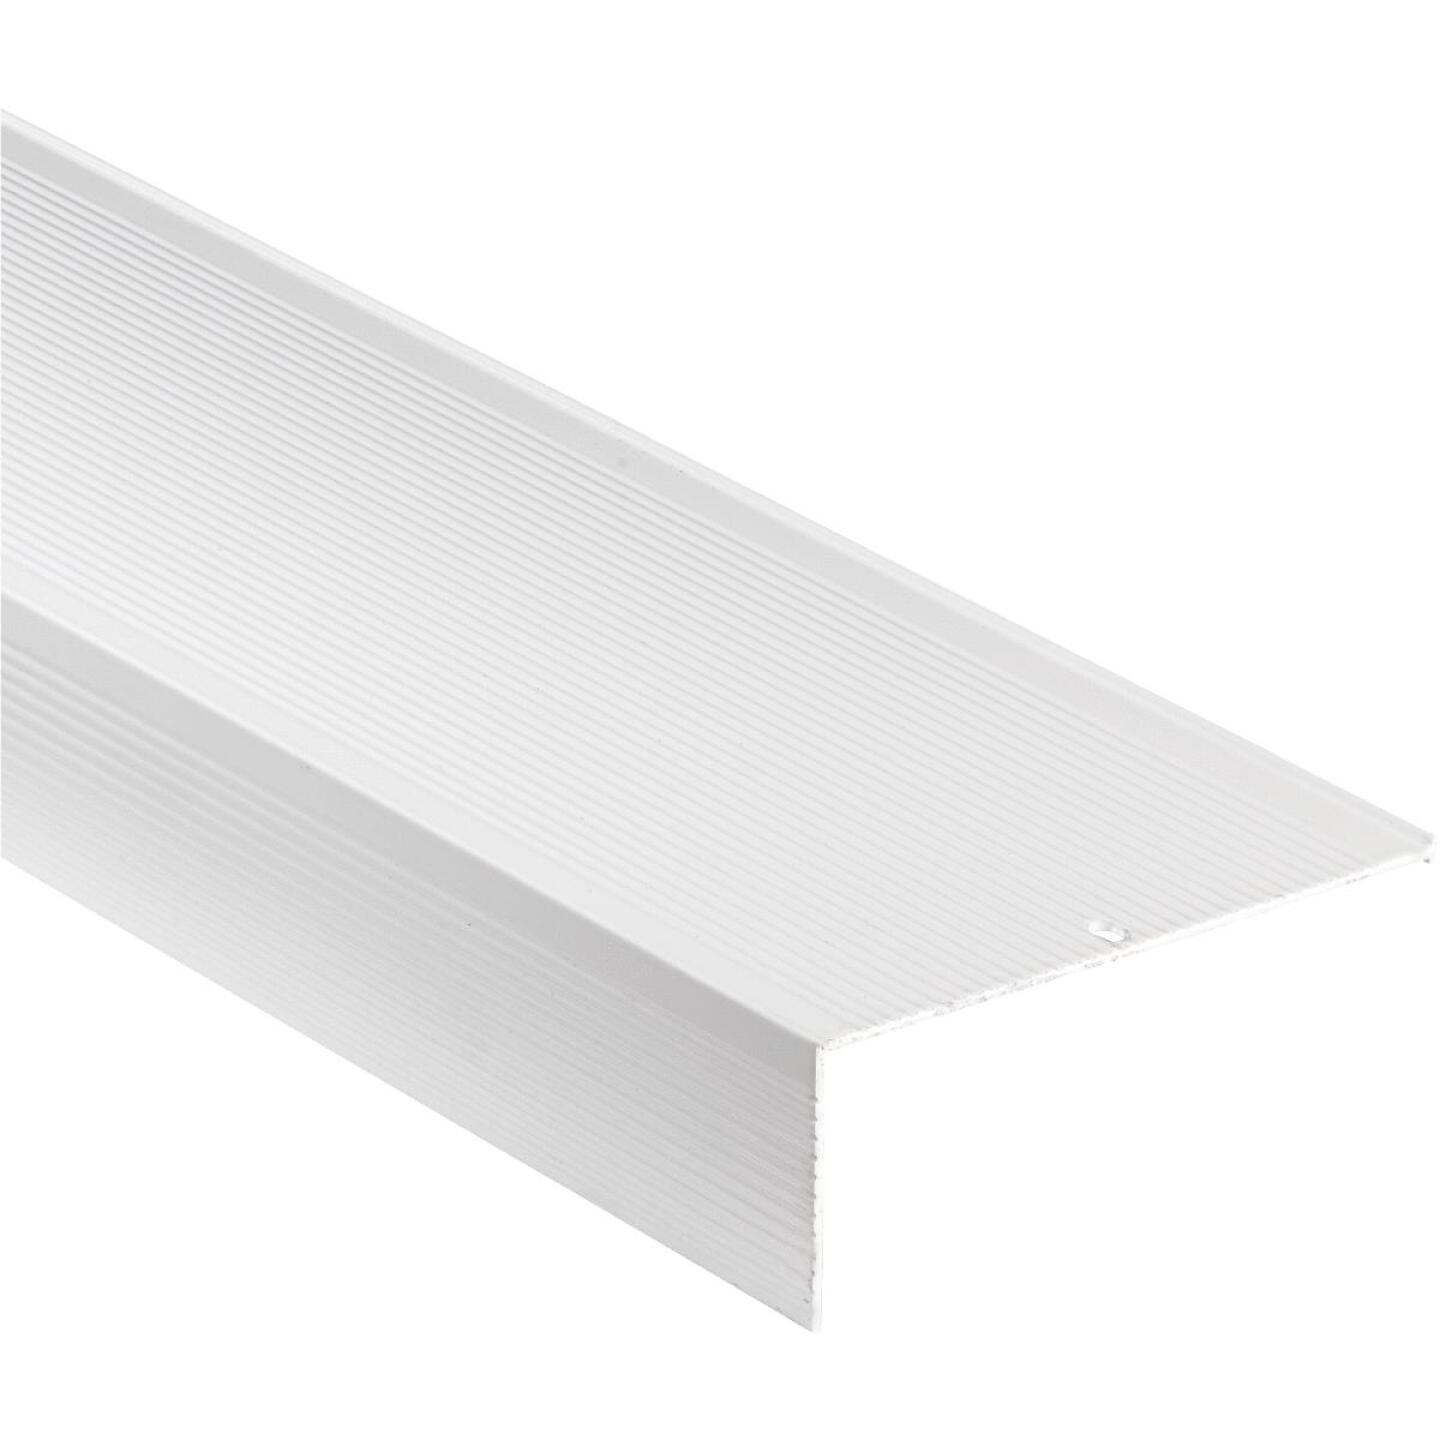 "M-D Ultra White 36"" x 4-1/2"" Sill Nosing Image 1"